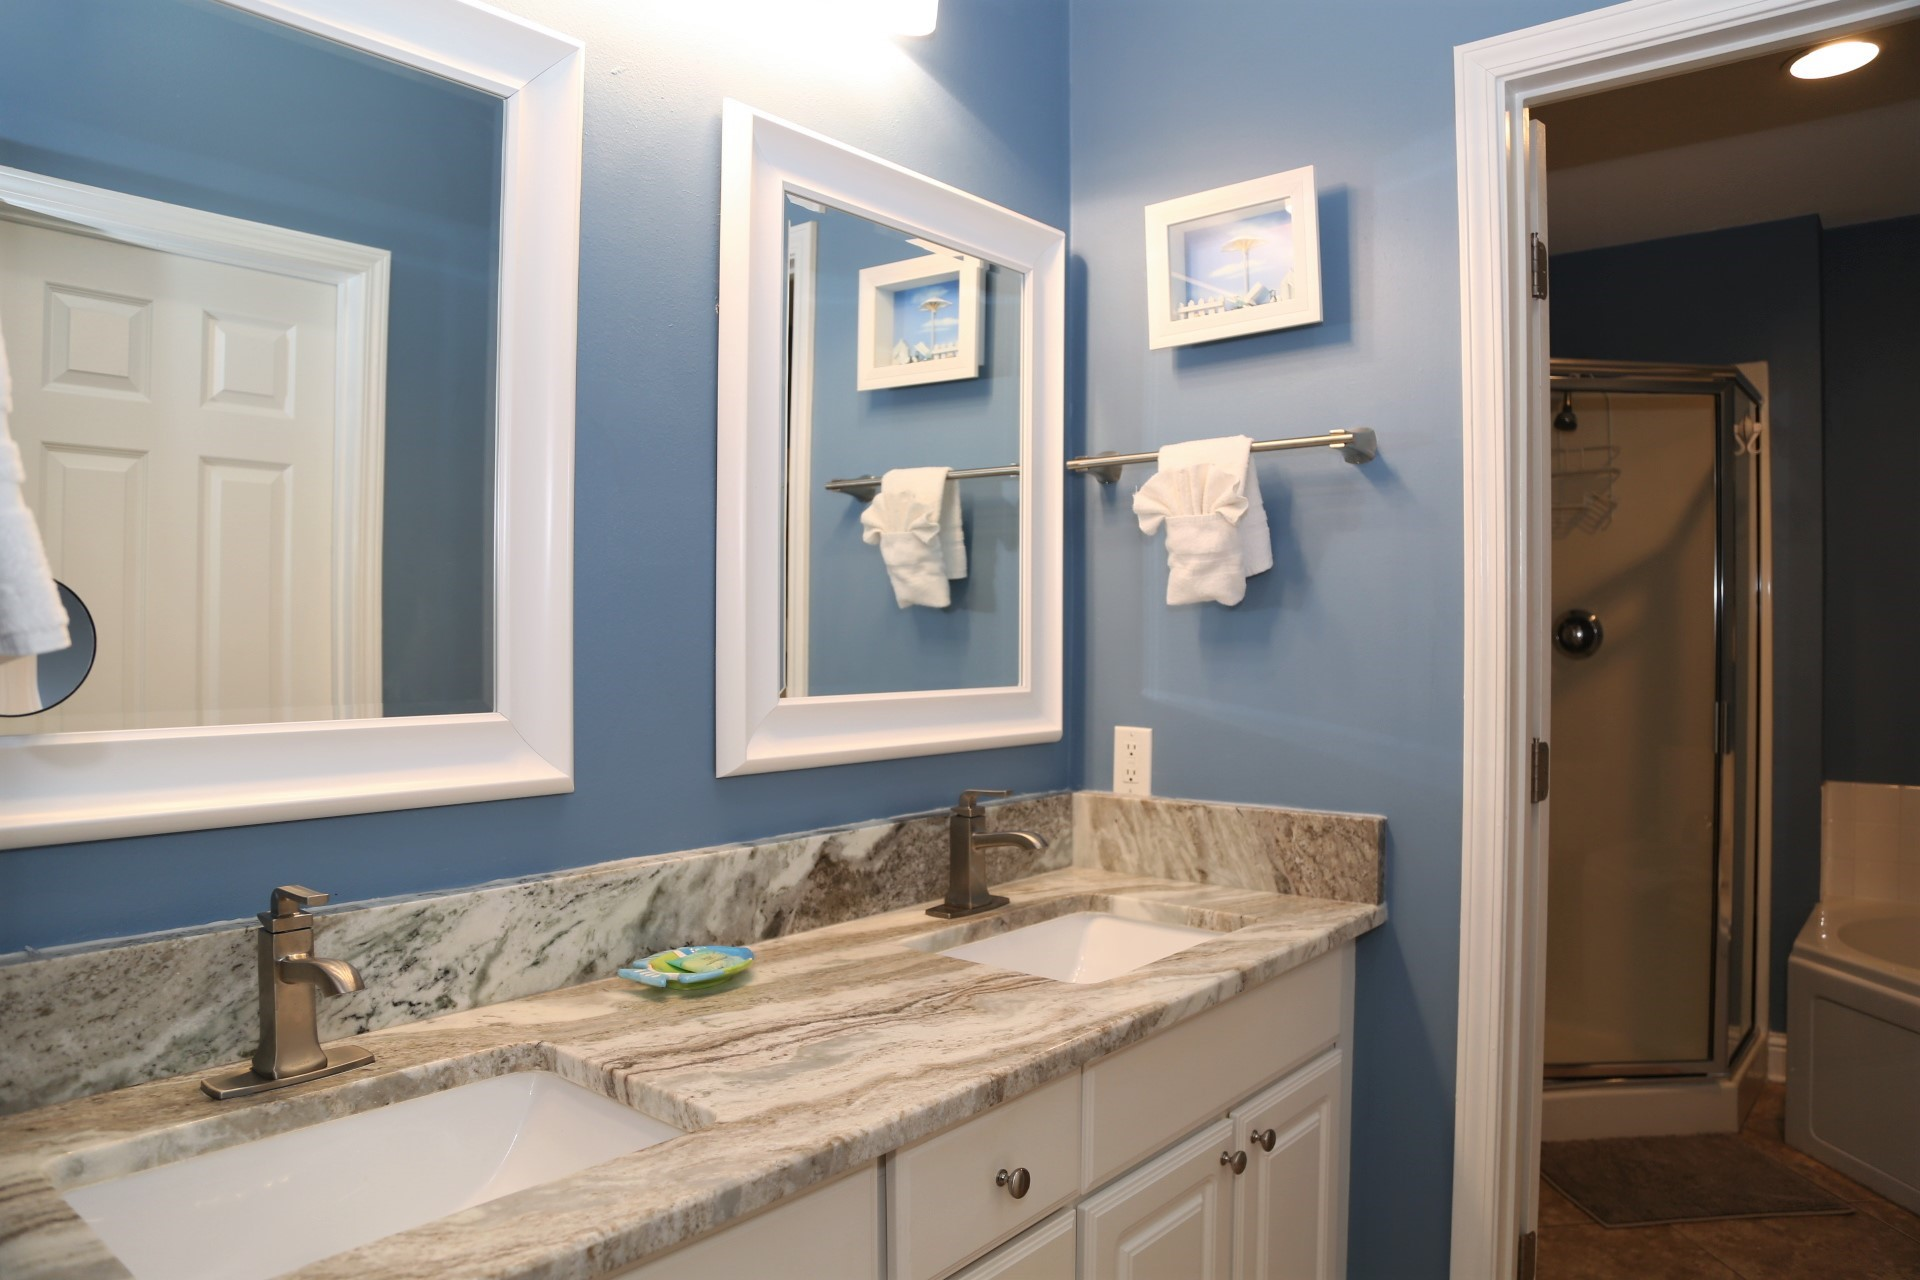 The master bathroom includes an upgraded double sink granite